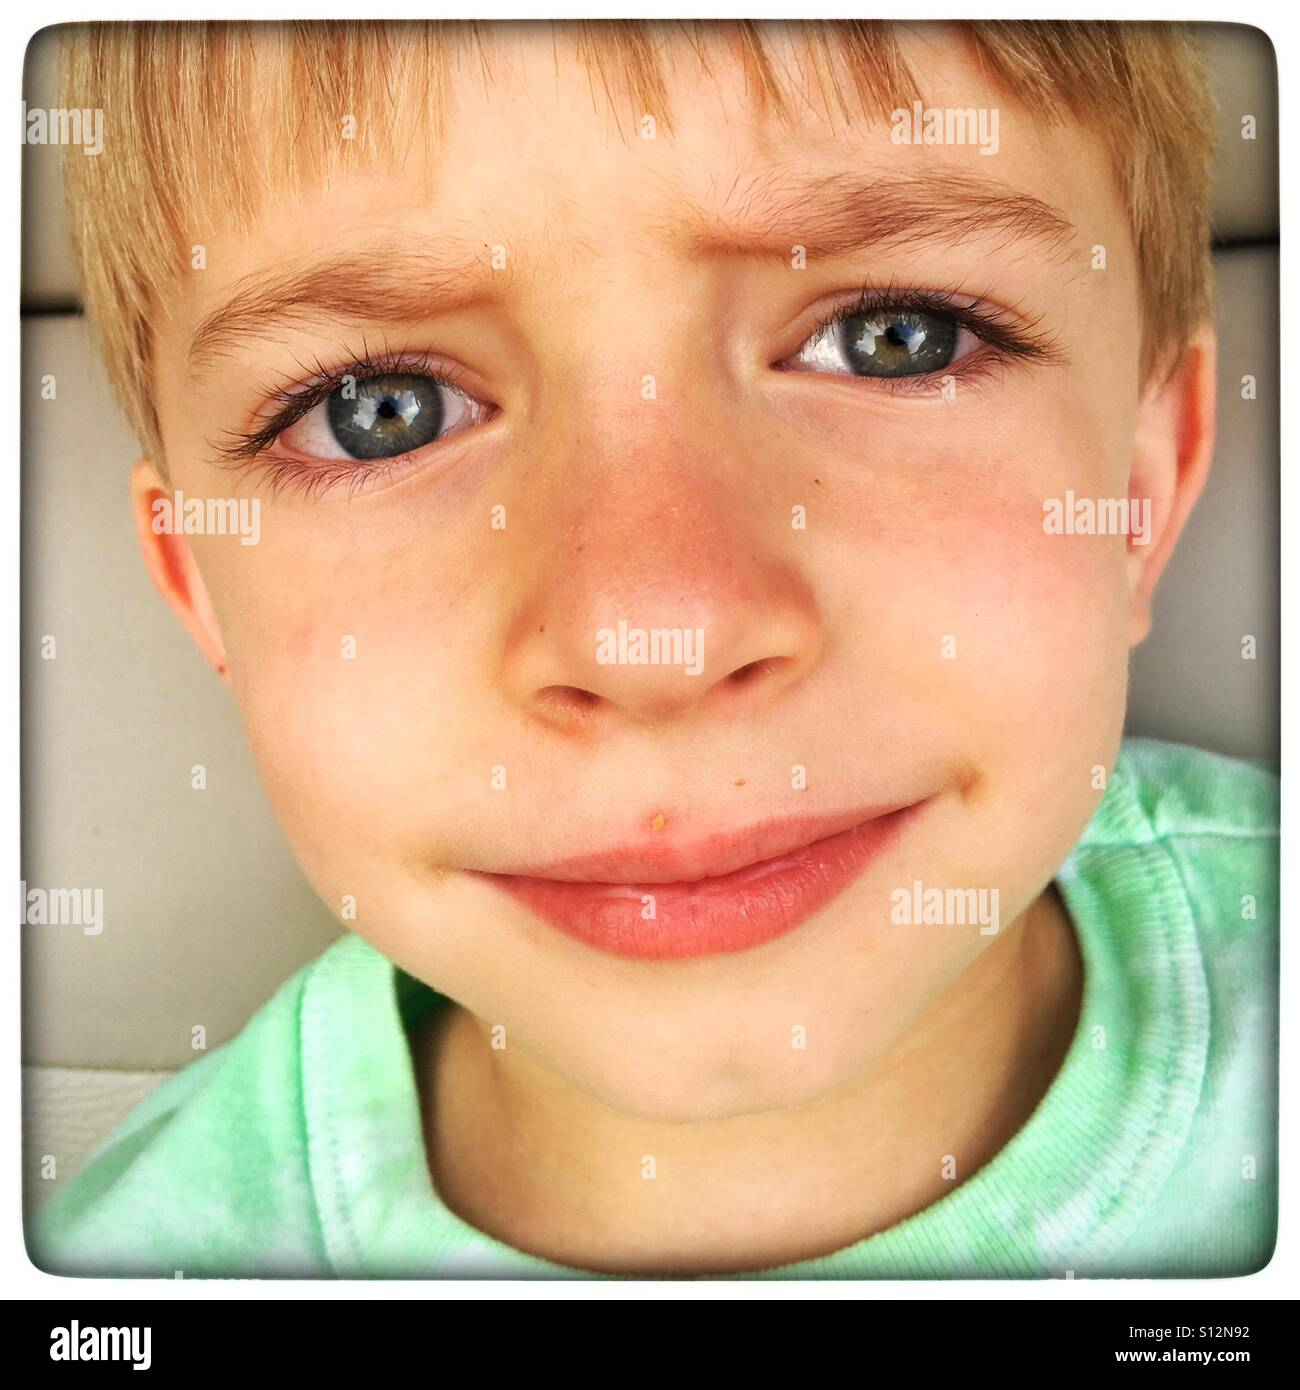 Young boys face - Stock Image